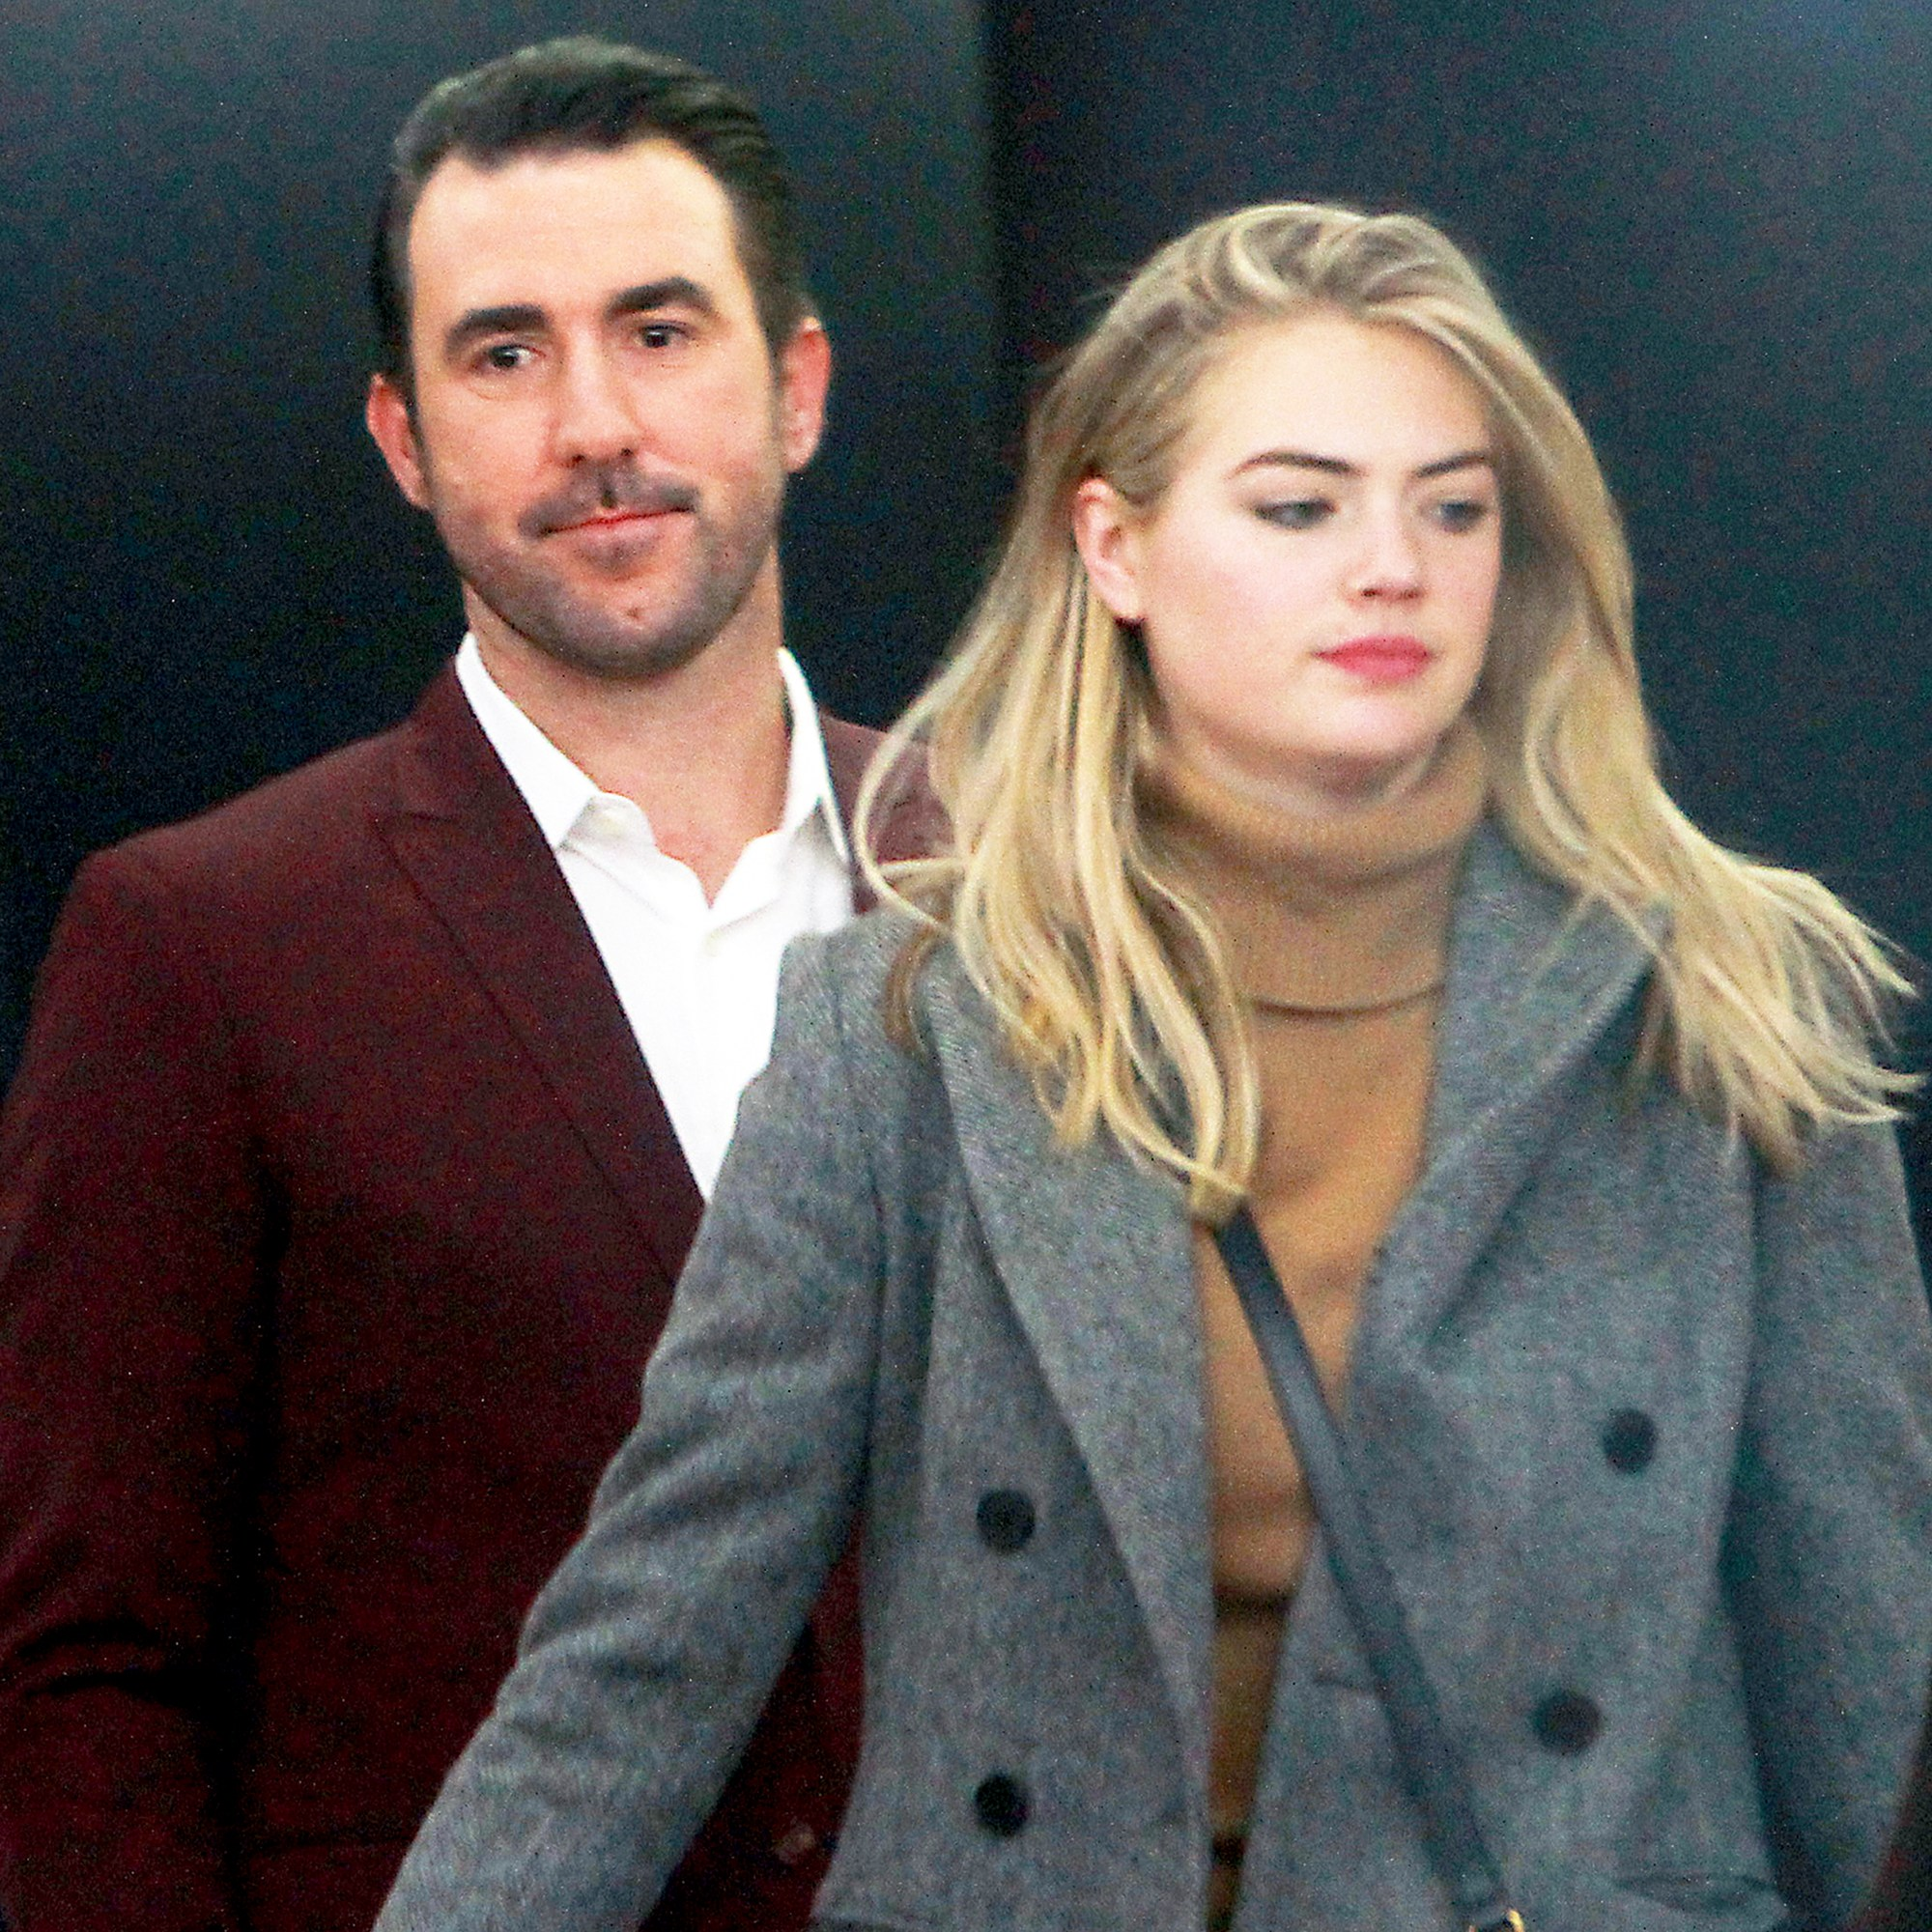 Justin Verlander and Kate Upton seen at NBC's Today Show on November 17, 2017 in New York City.